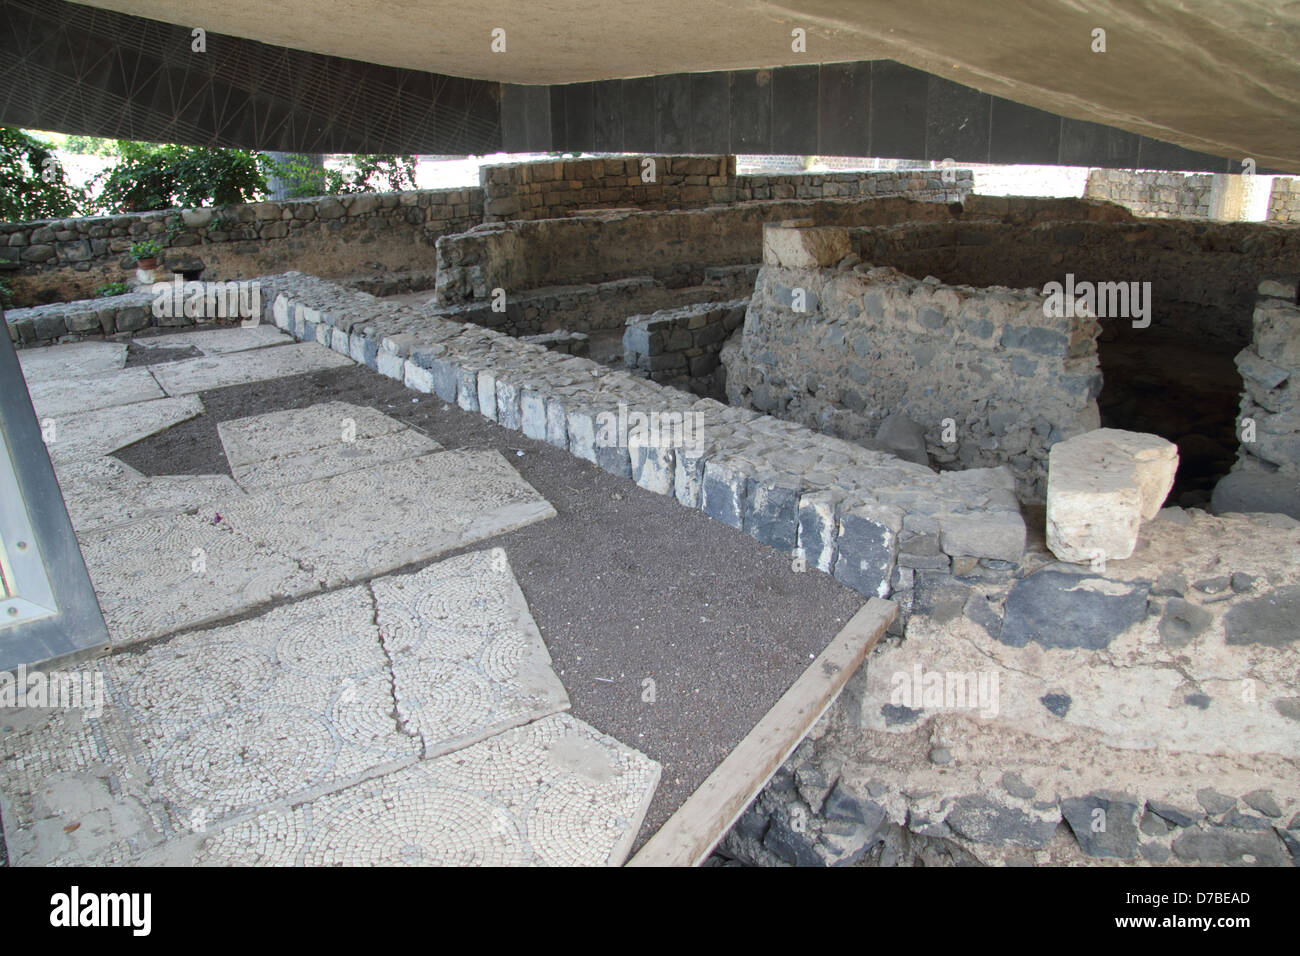 The octagonal House of St. Peter in Capernaum - Stock Image